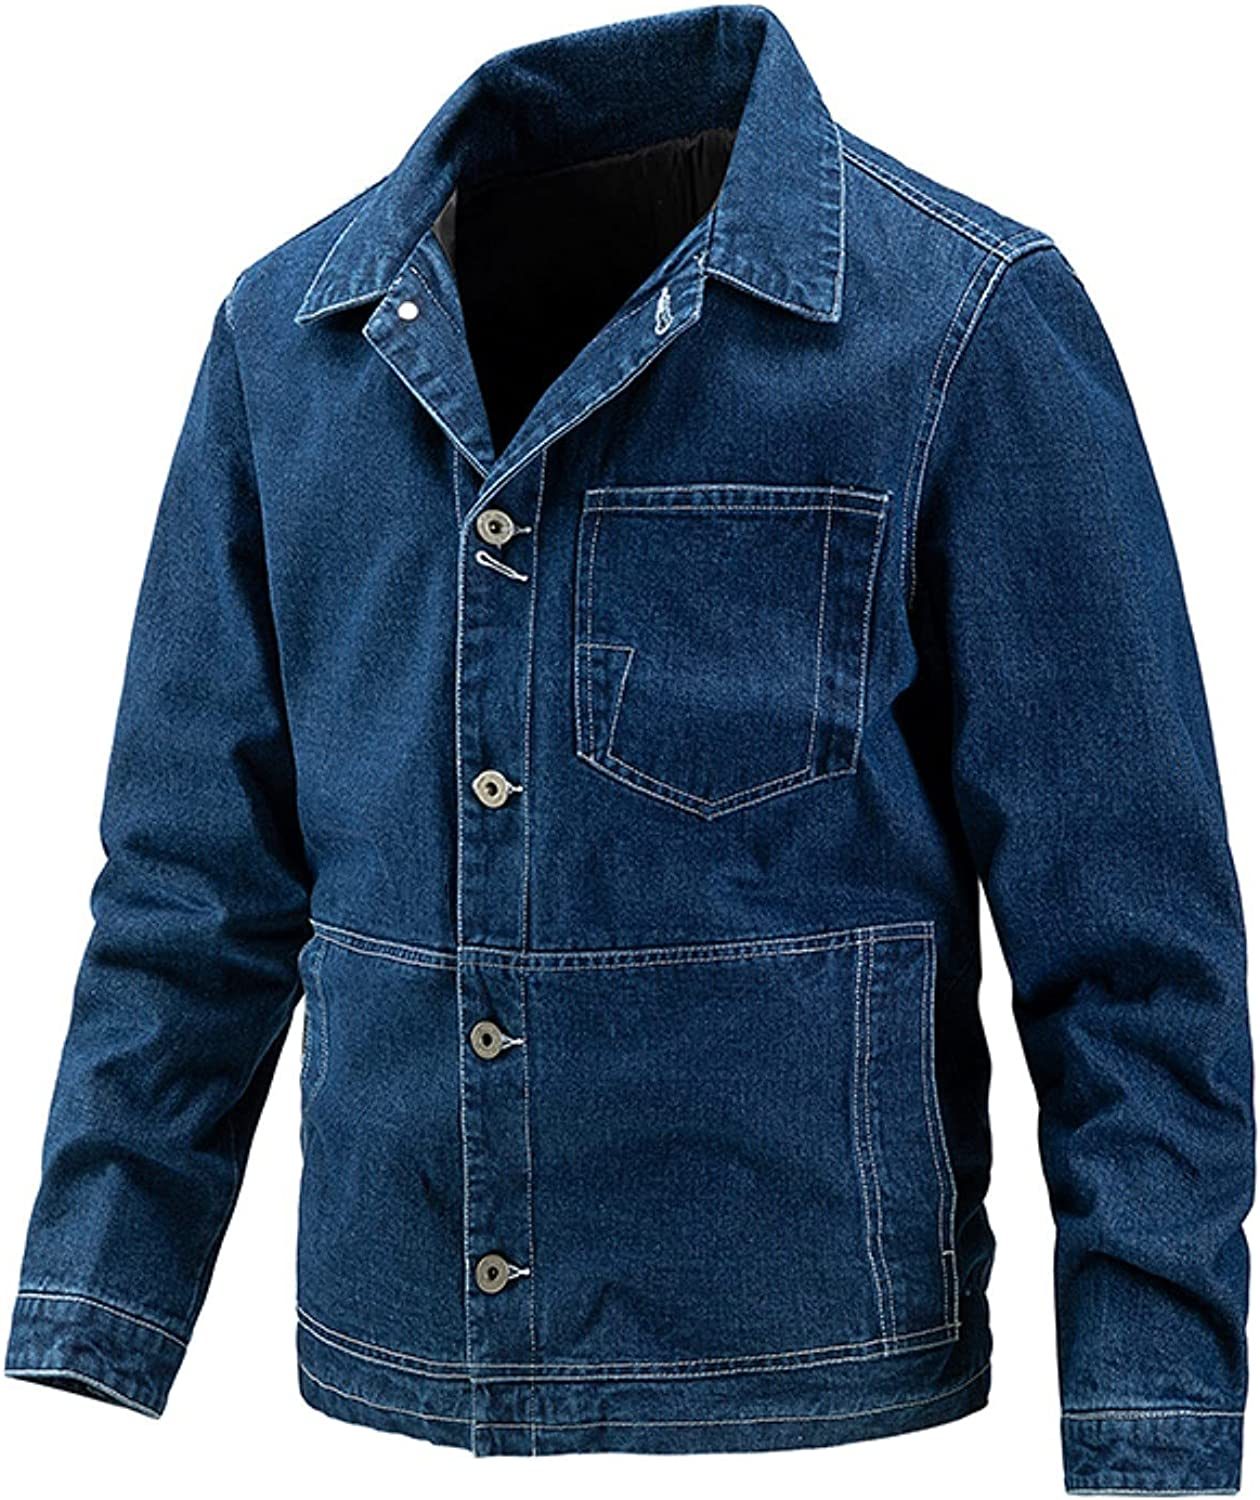 TEVEQ Men's Jean Jacket Fall Winter Was Casual Max 41% OFF Solid Award Color Loose